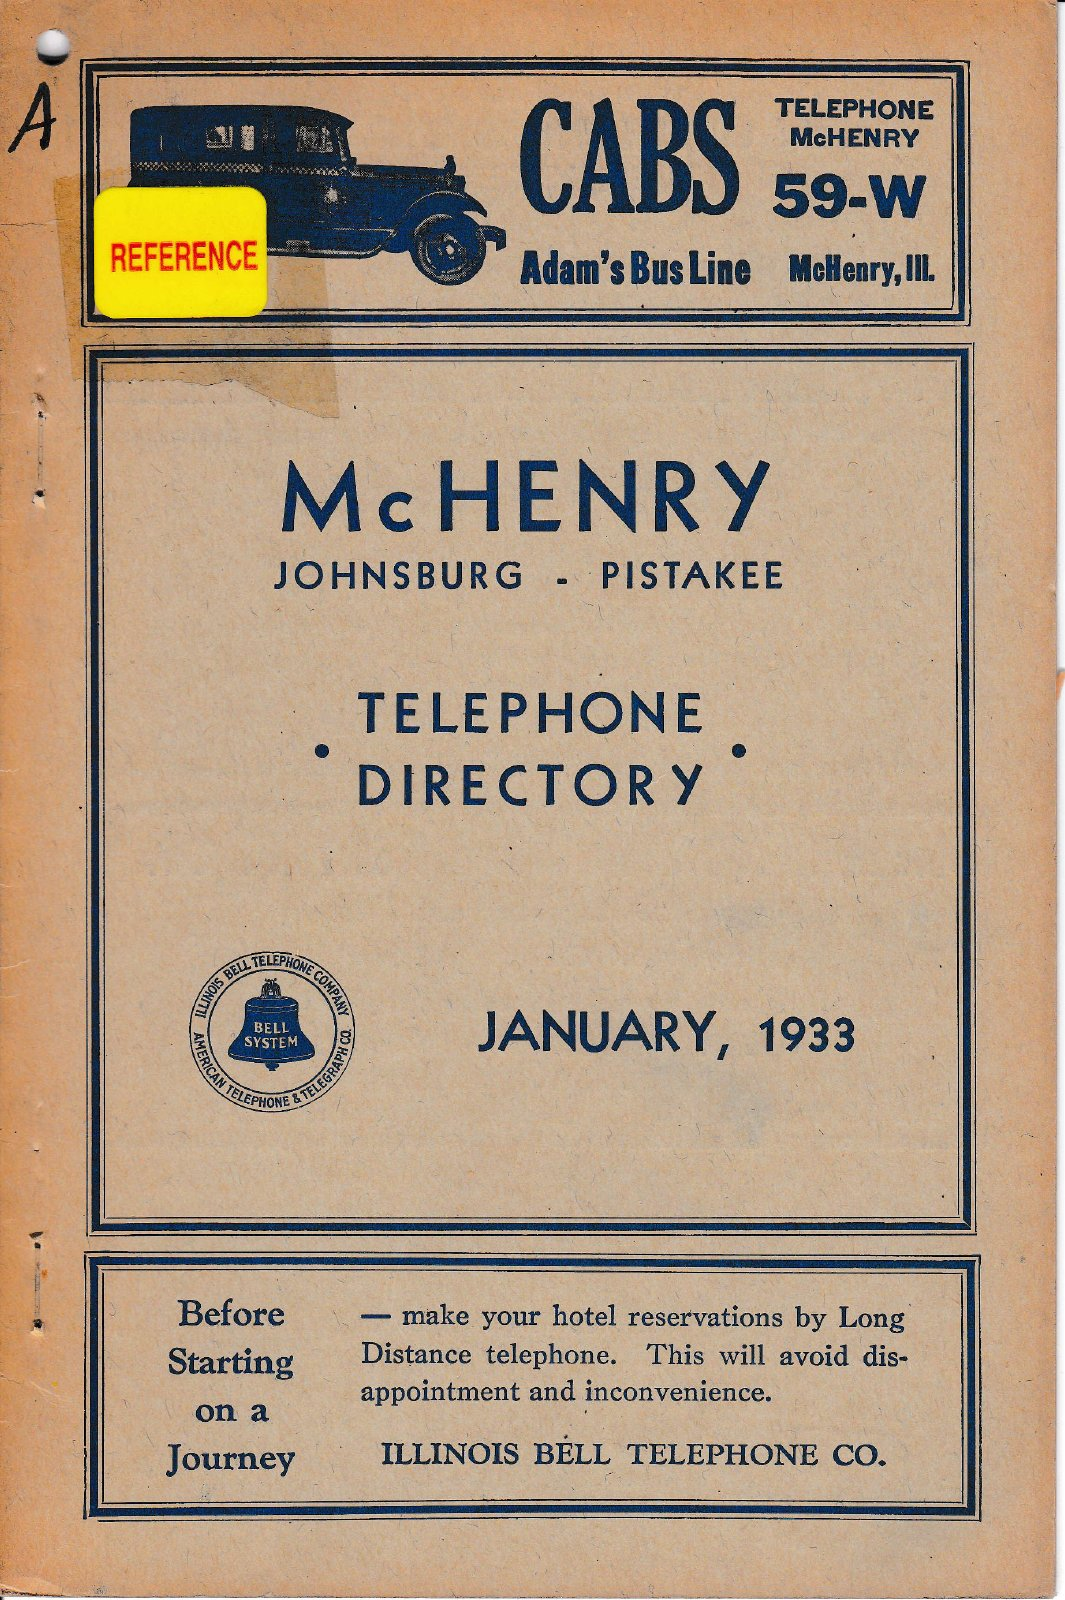 1933 January - McHenry Telephone Directory